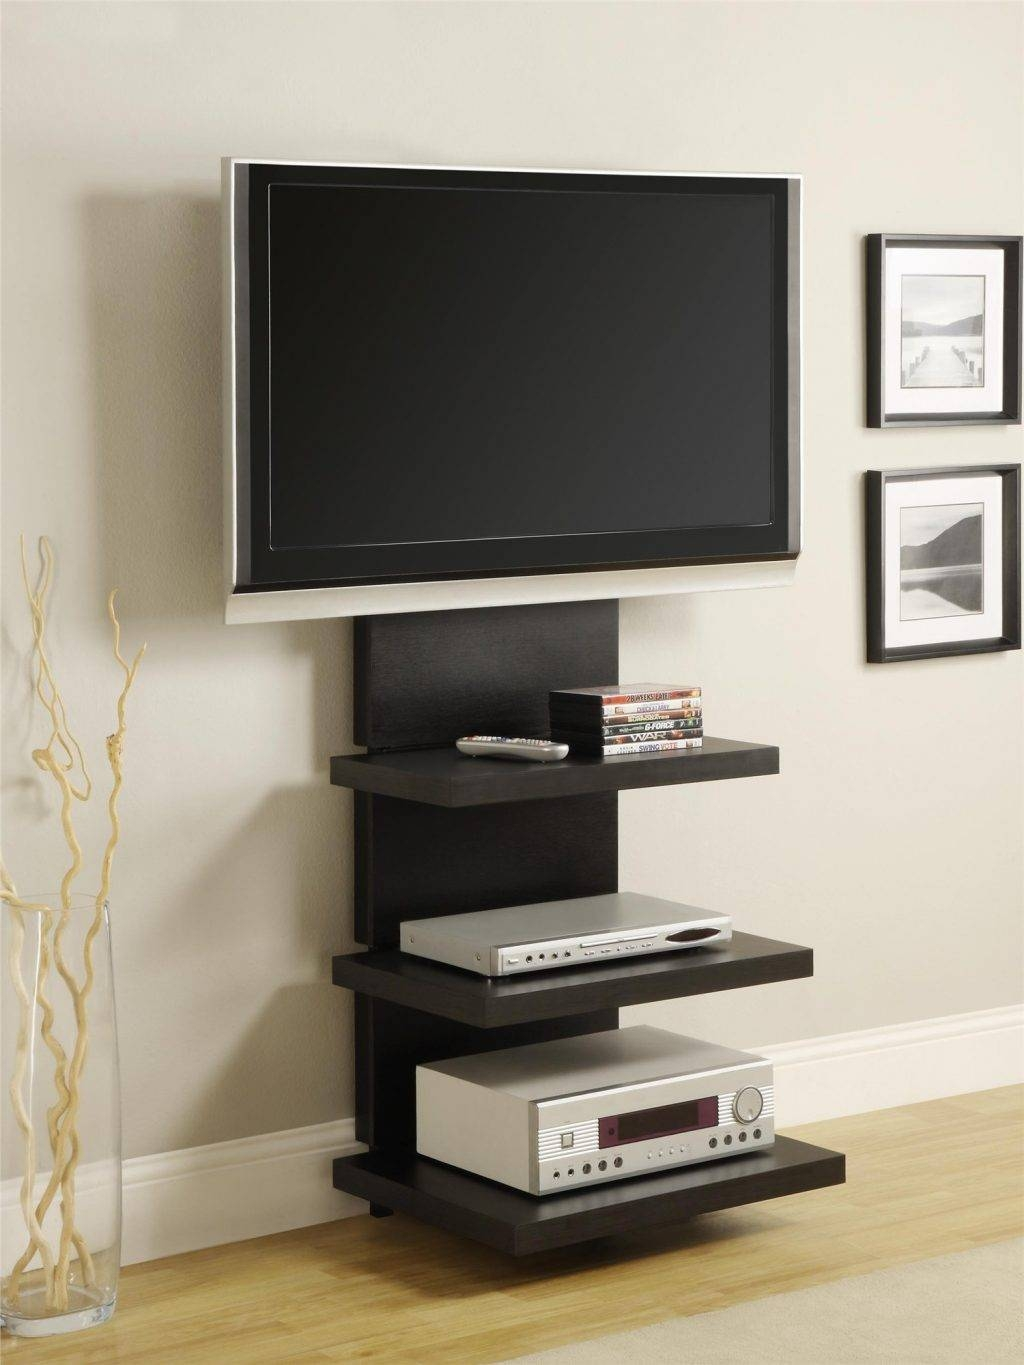 2019 Best Of Tv Stands For Small Spaces